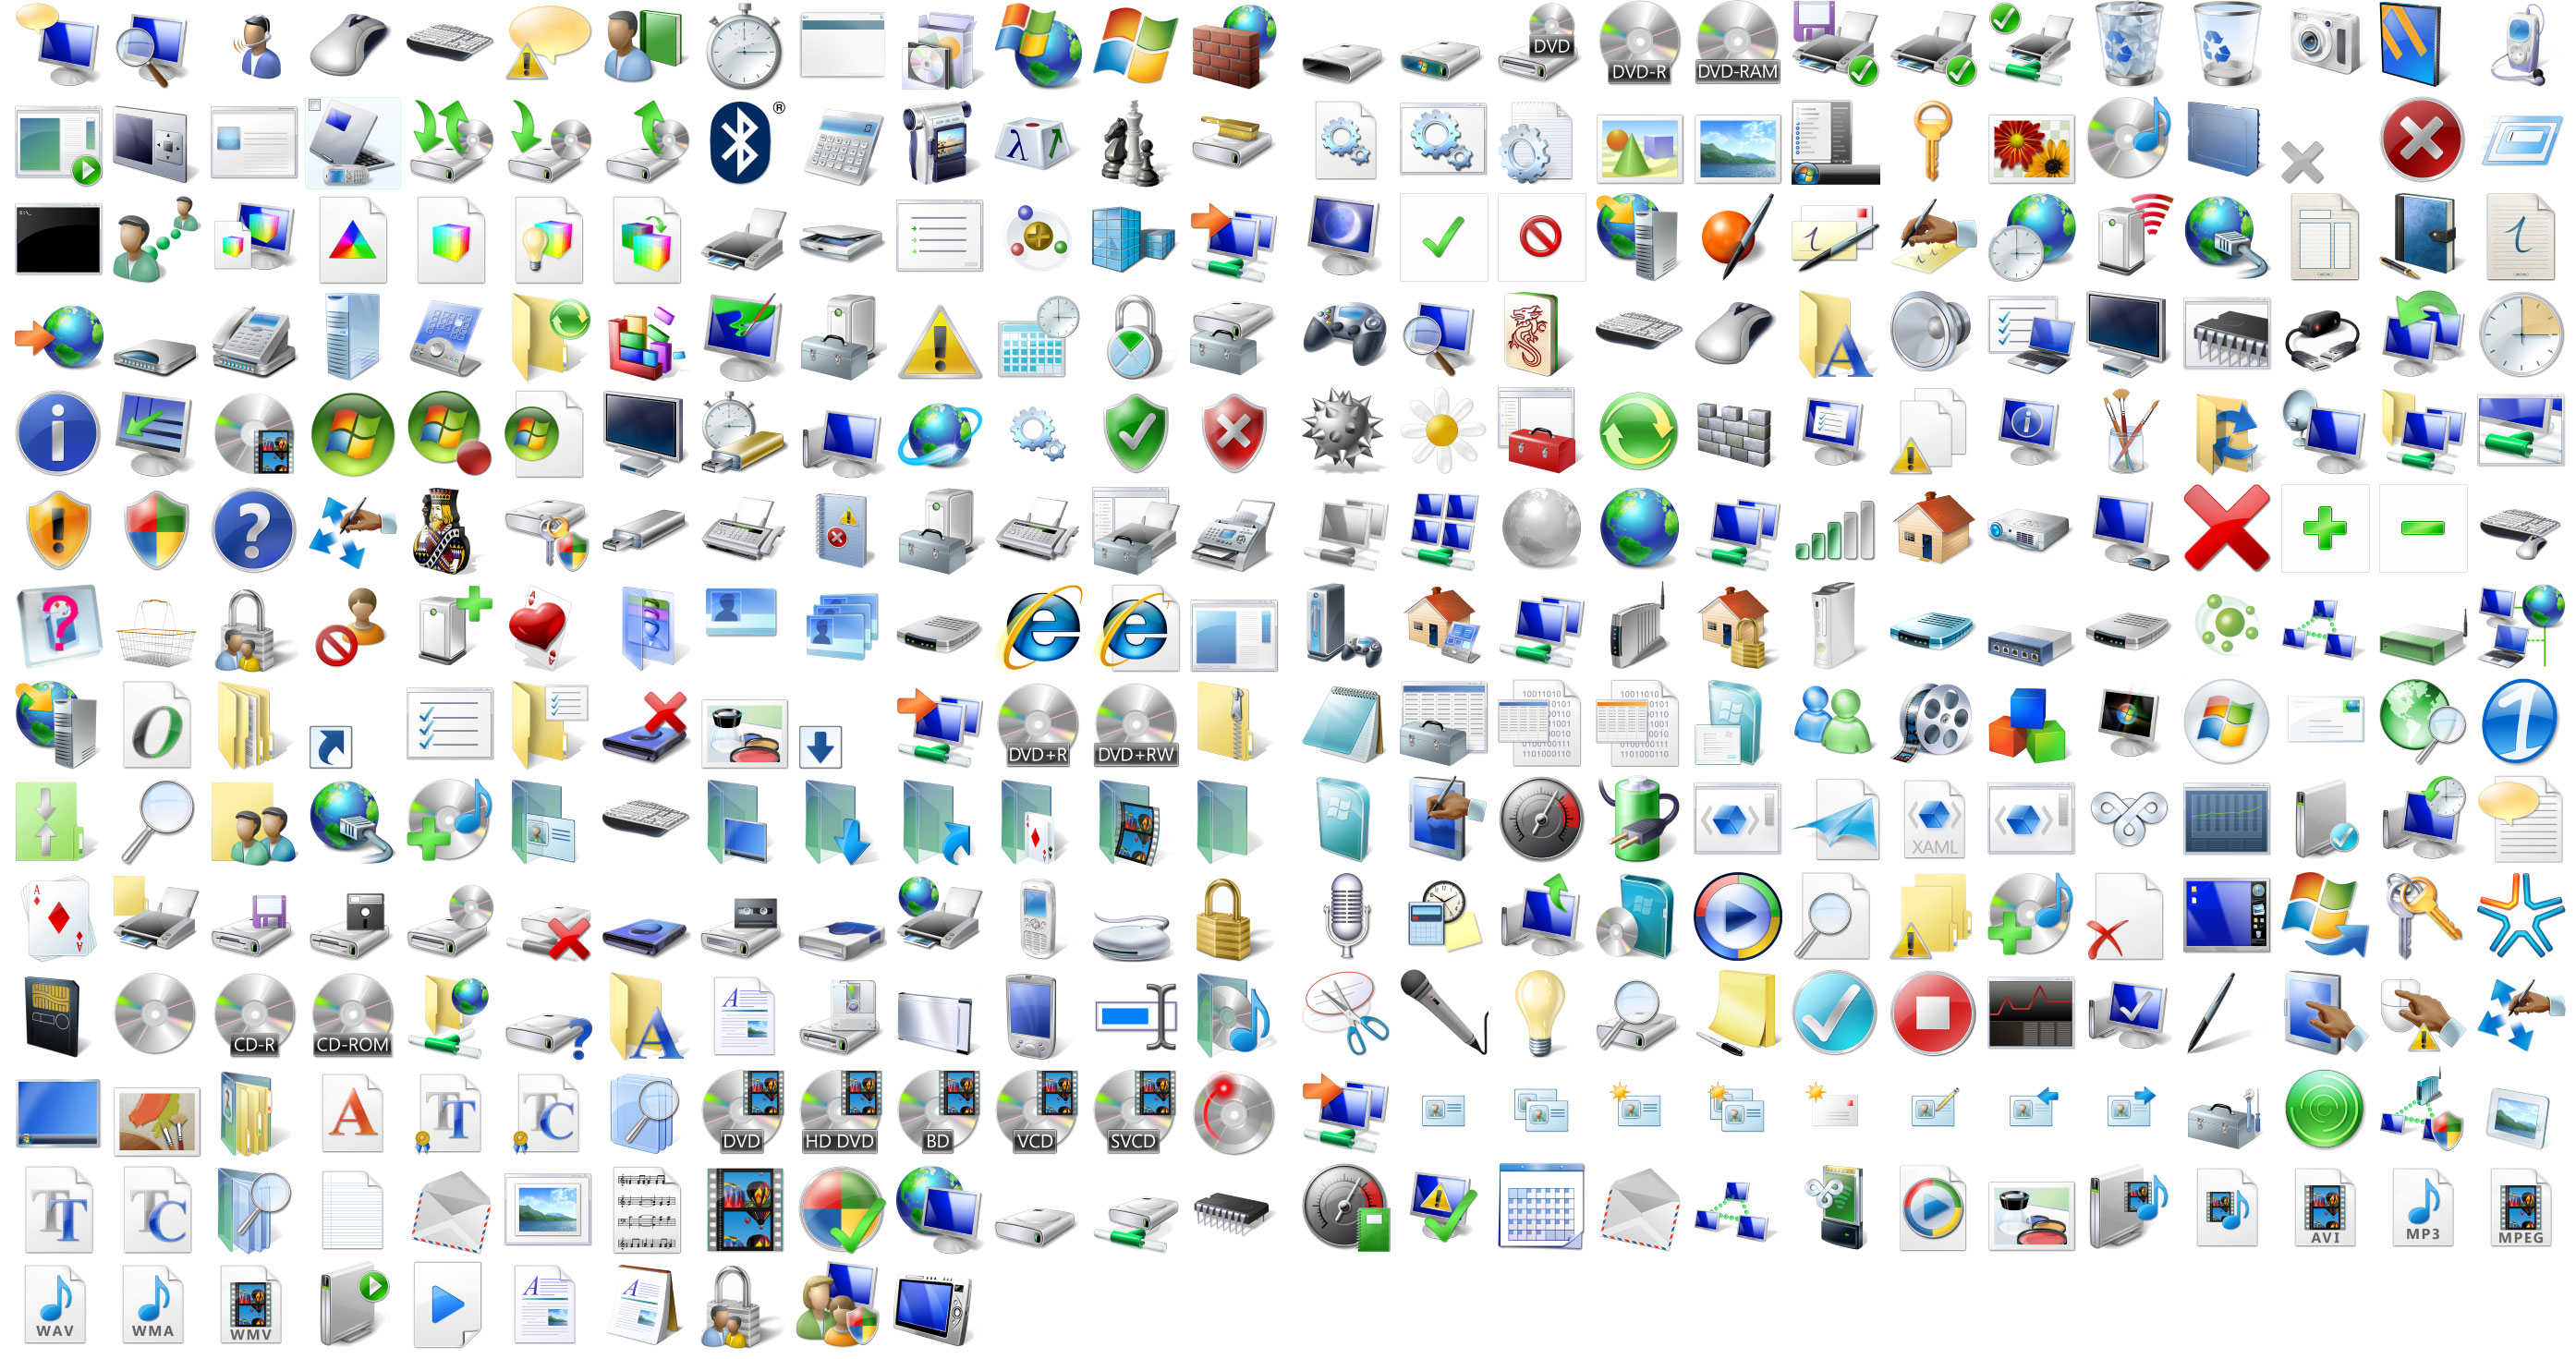 10 Windows Vista Desktop Icons Images